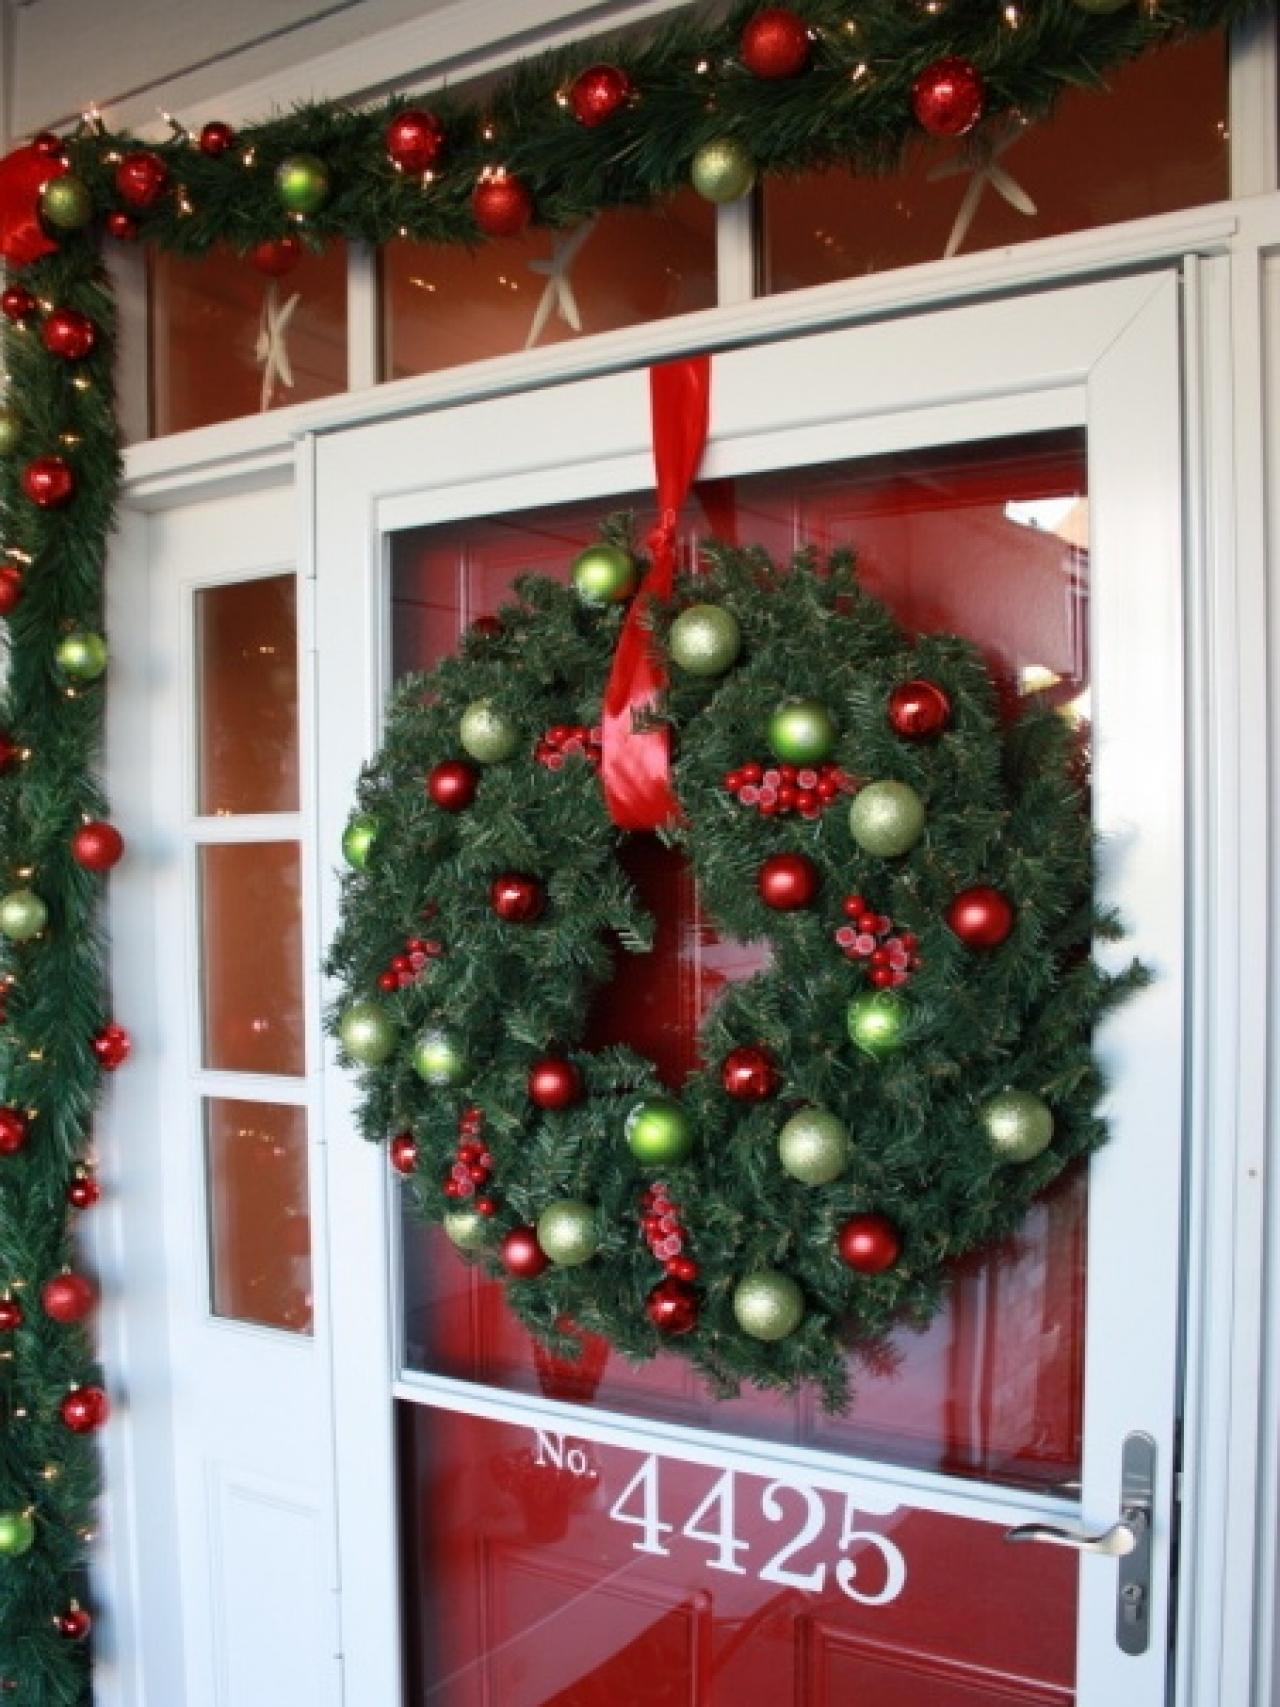 Le Meilleur Christmas Door Decorations Interior Design Styles And Ce Mois Ci